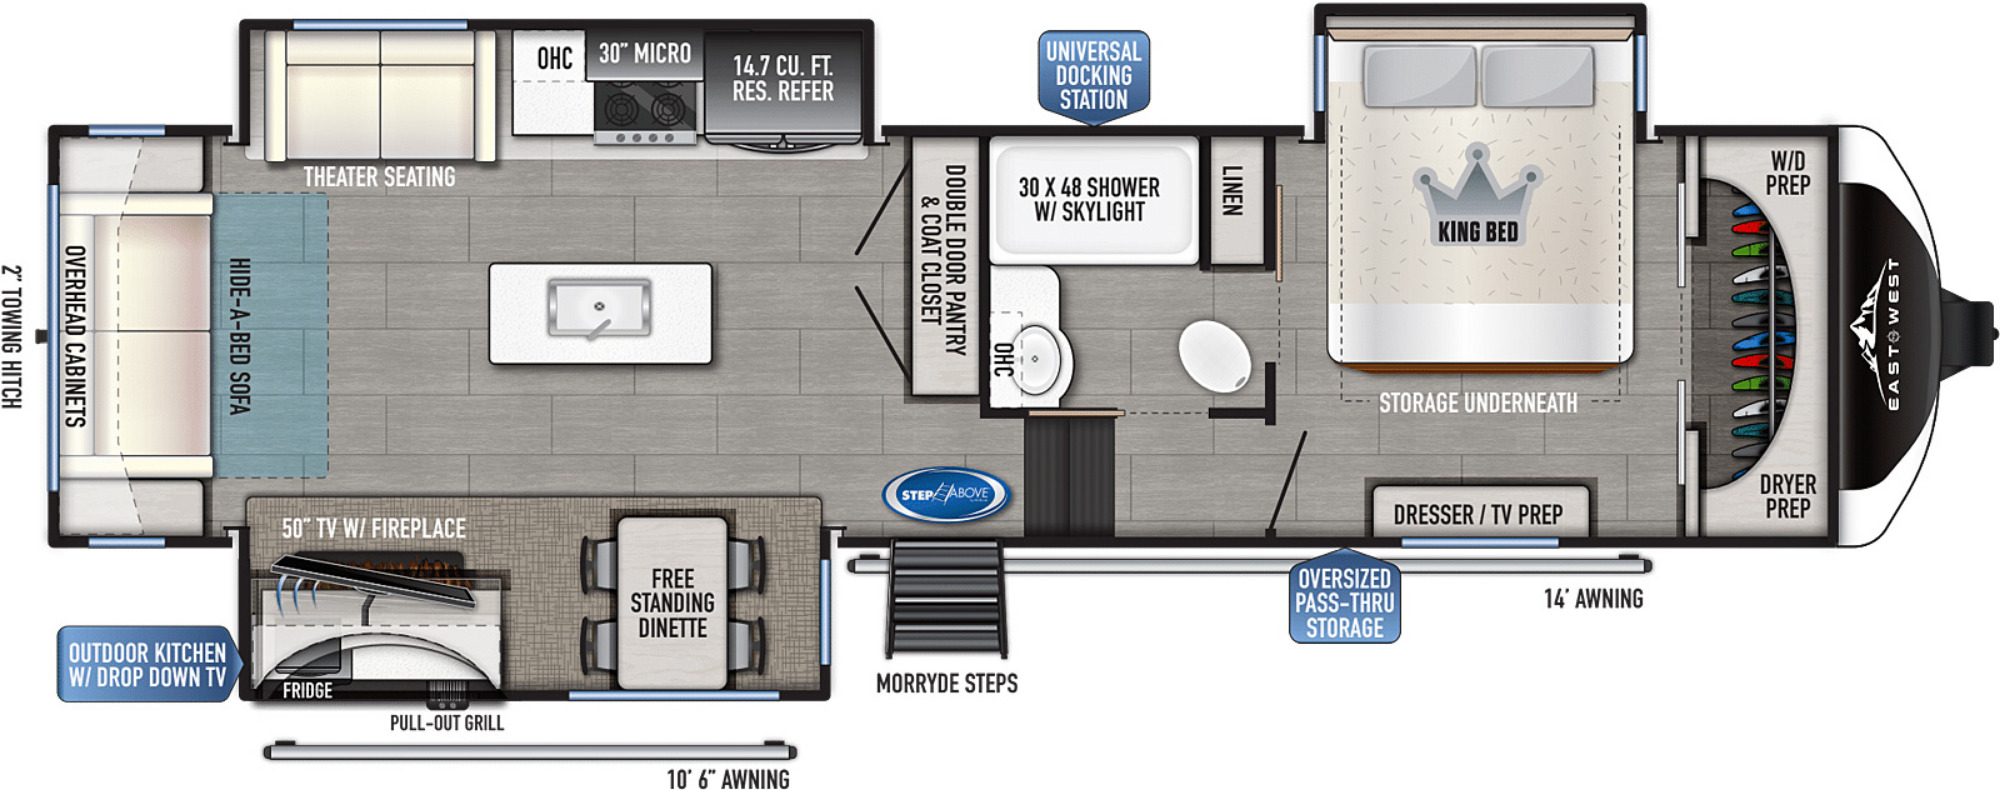 View Floor Plan for 2022 EAST TO WEST TANDARA 321RL-OK